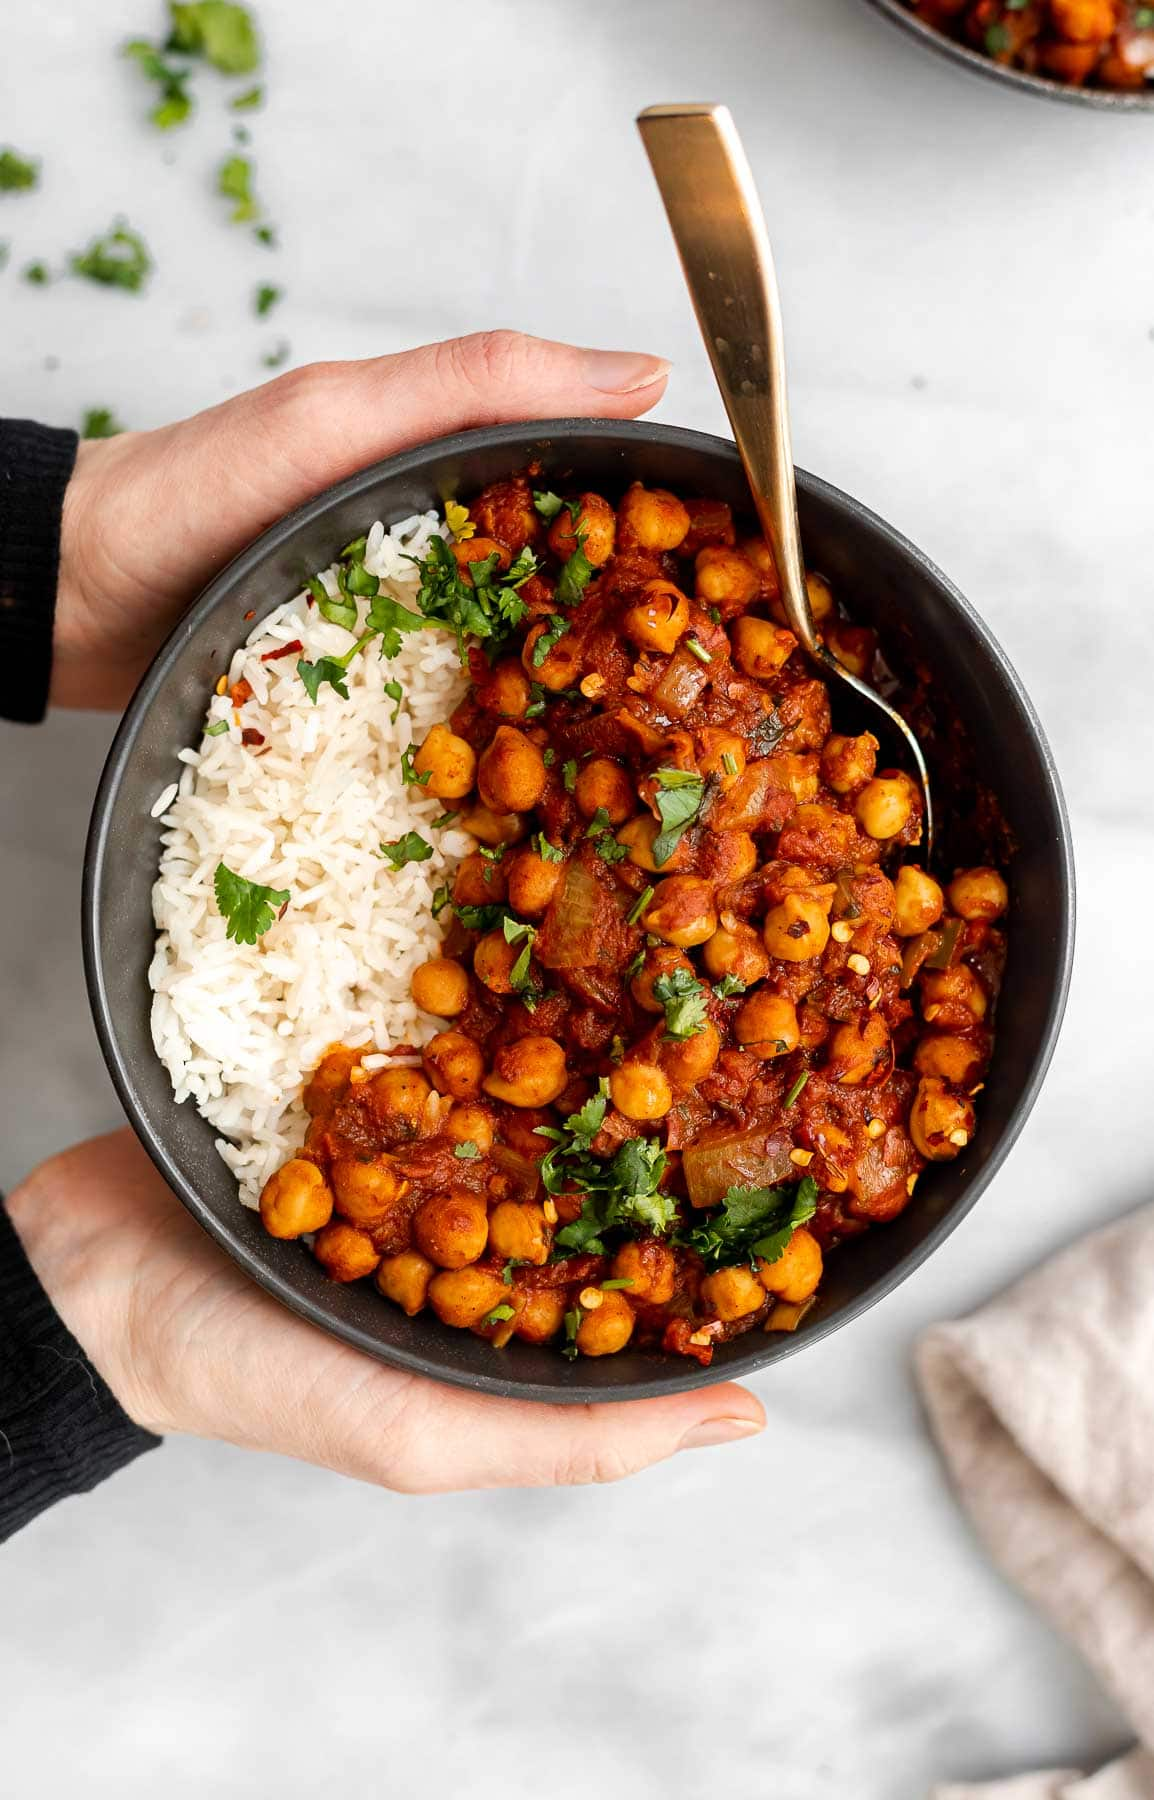 Hands holding a bowl of the vegan chana masala with white rice.